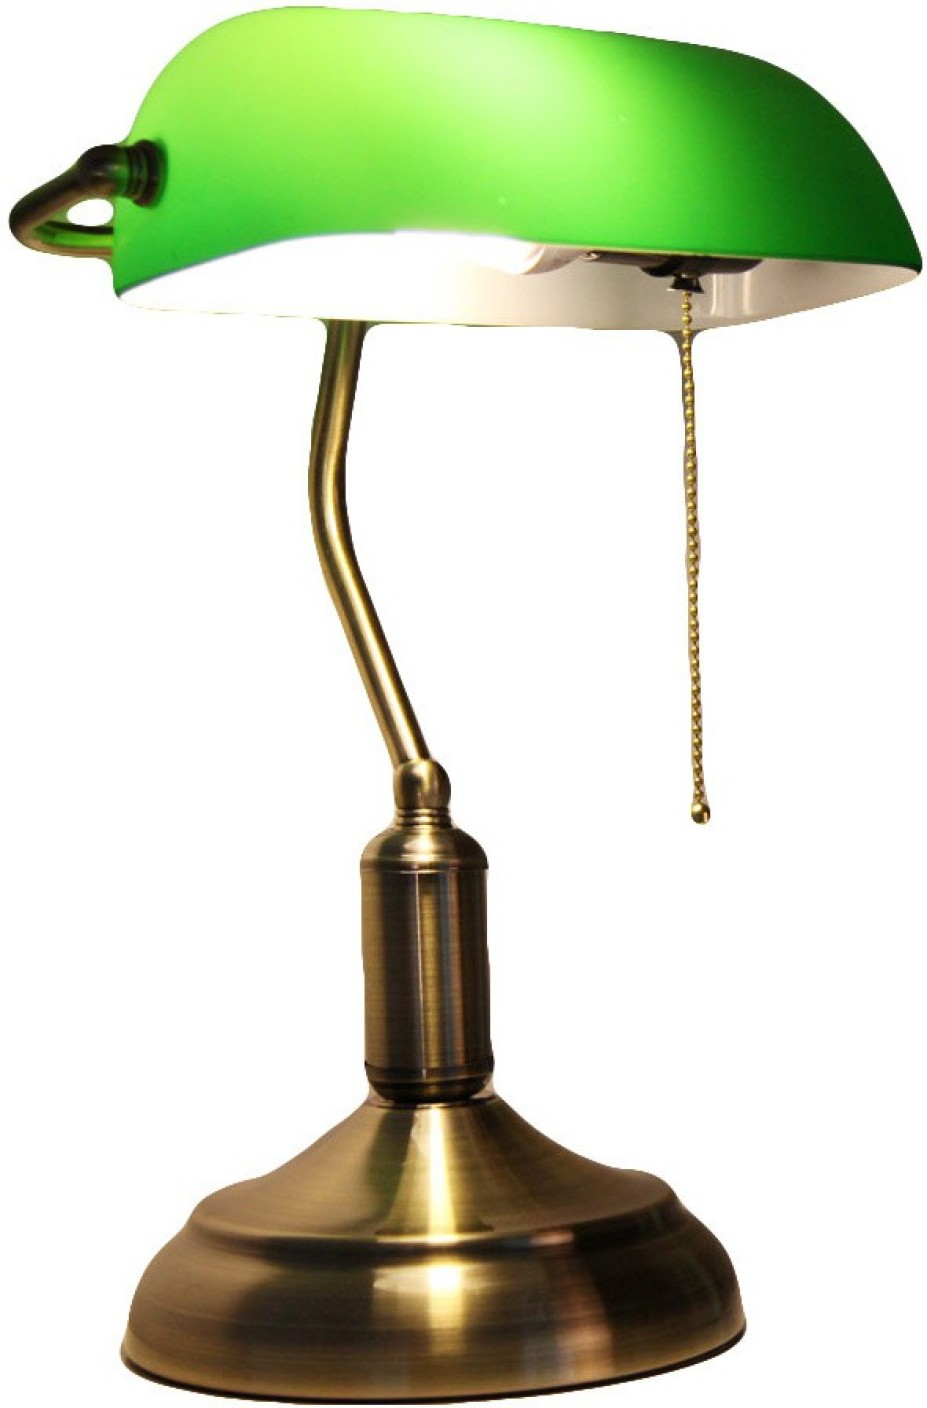 Prop it up vintage banker table lamp price in india buy prop it banker table lamp on offer geotapseo Image collections